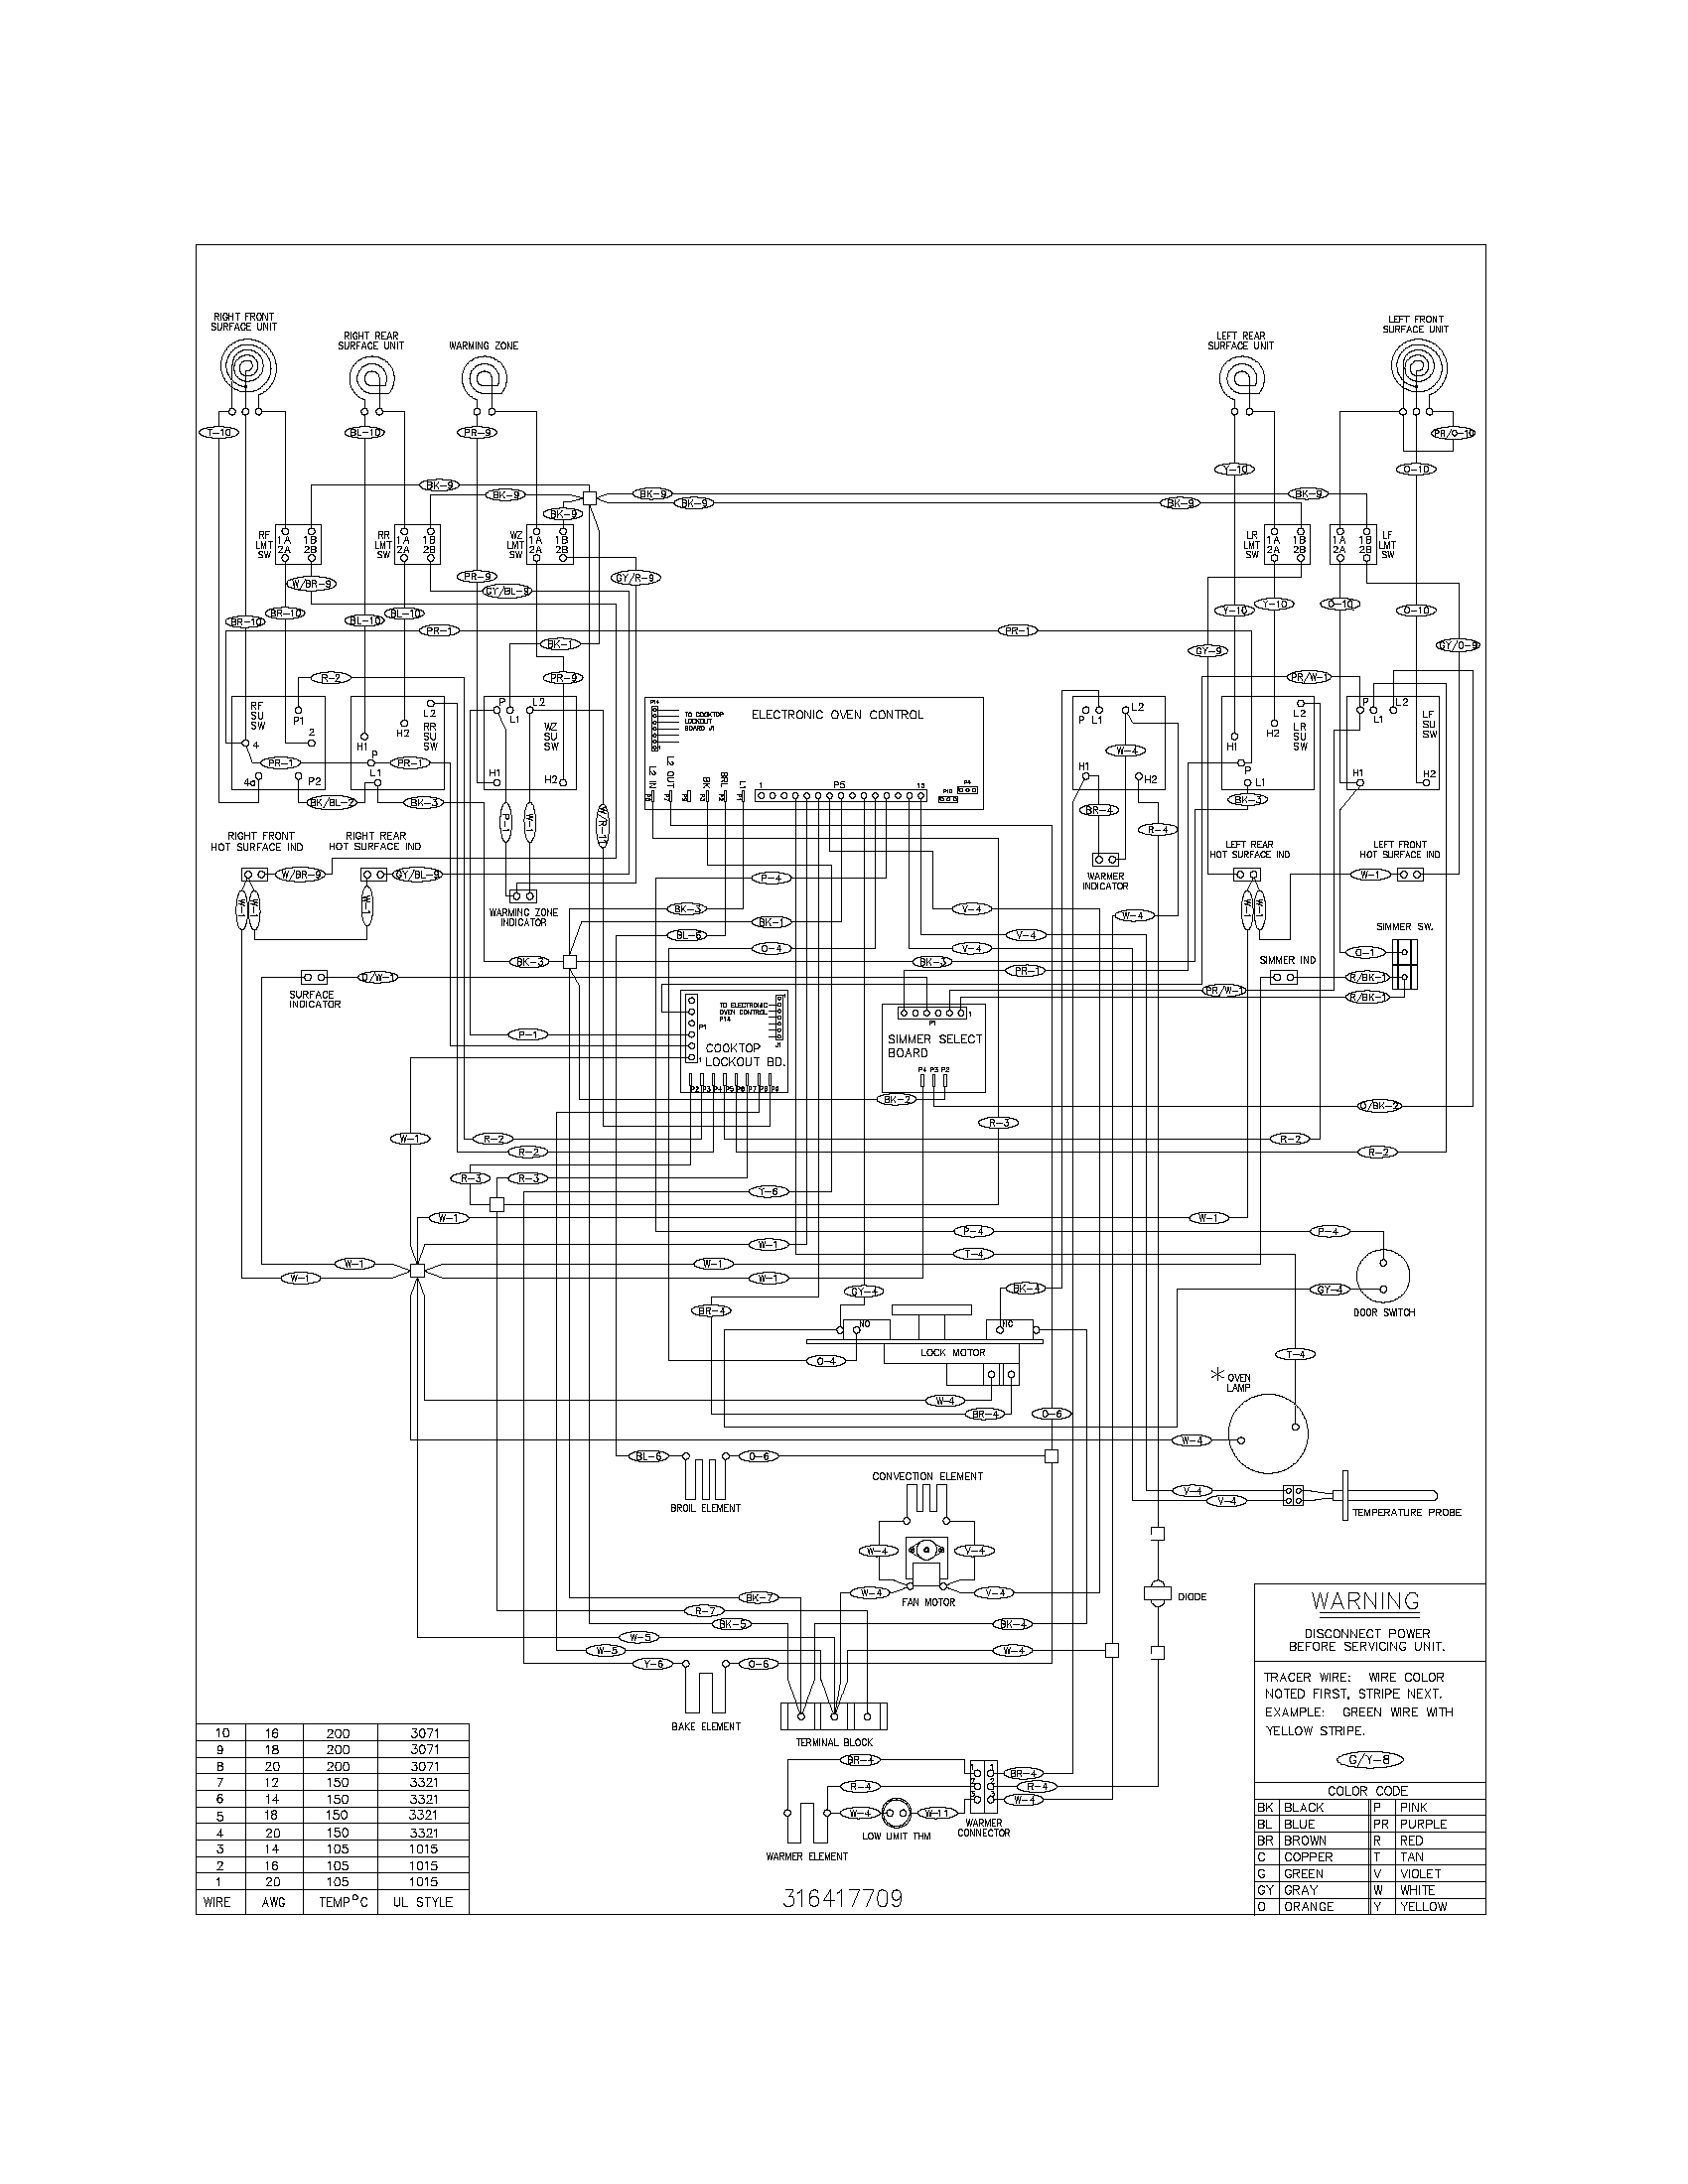 Electric Dryer Cord Wiring Diagram